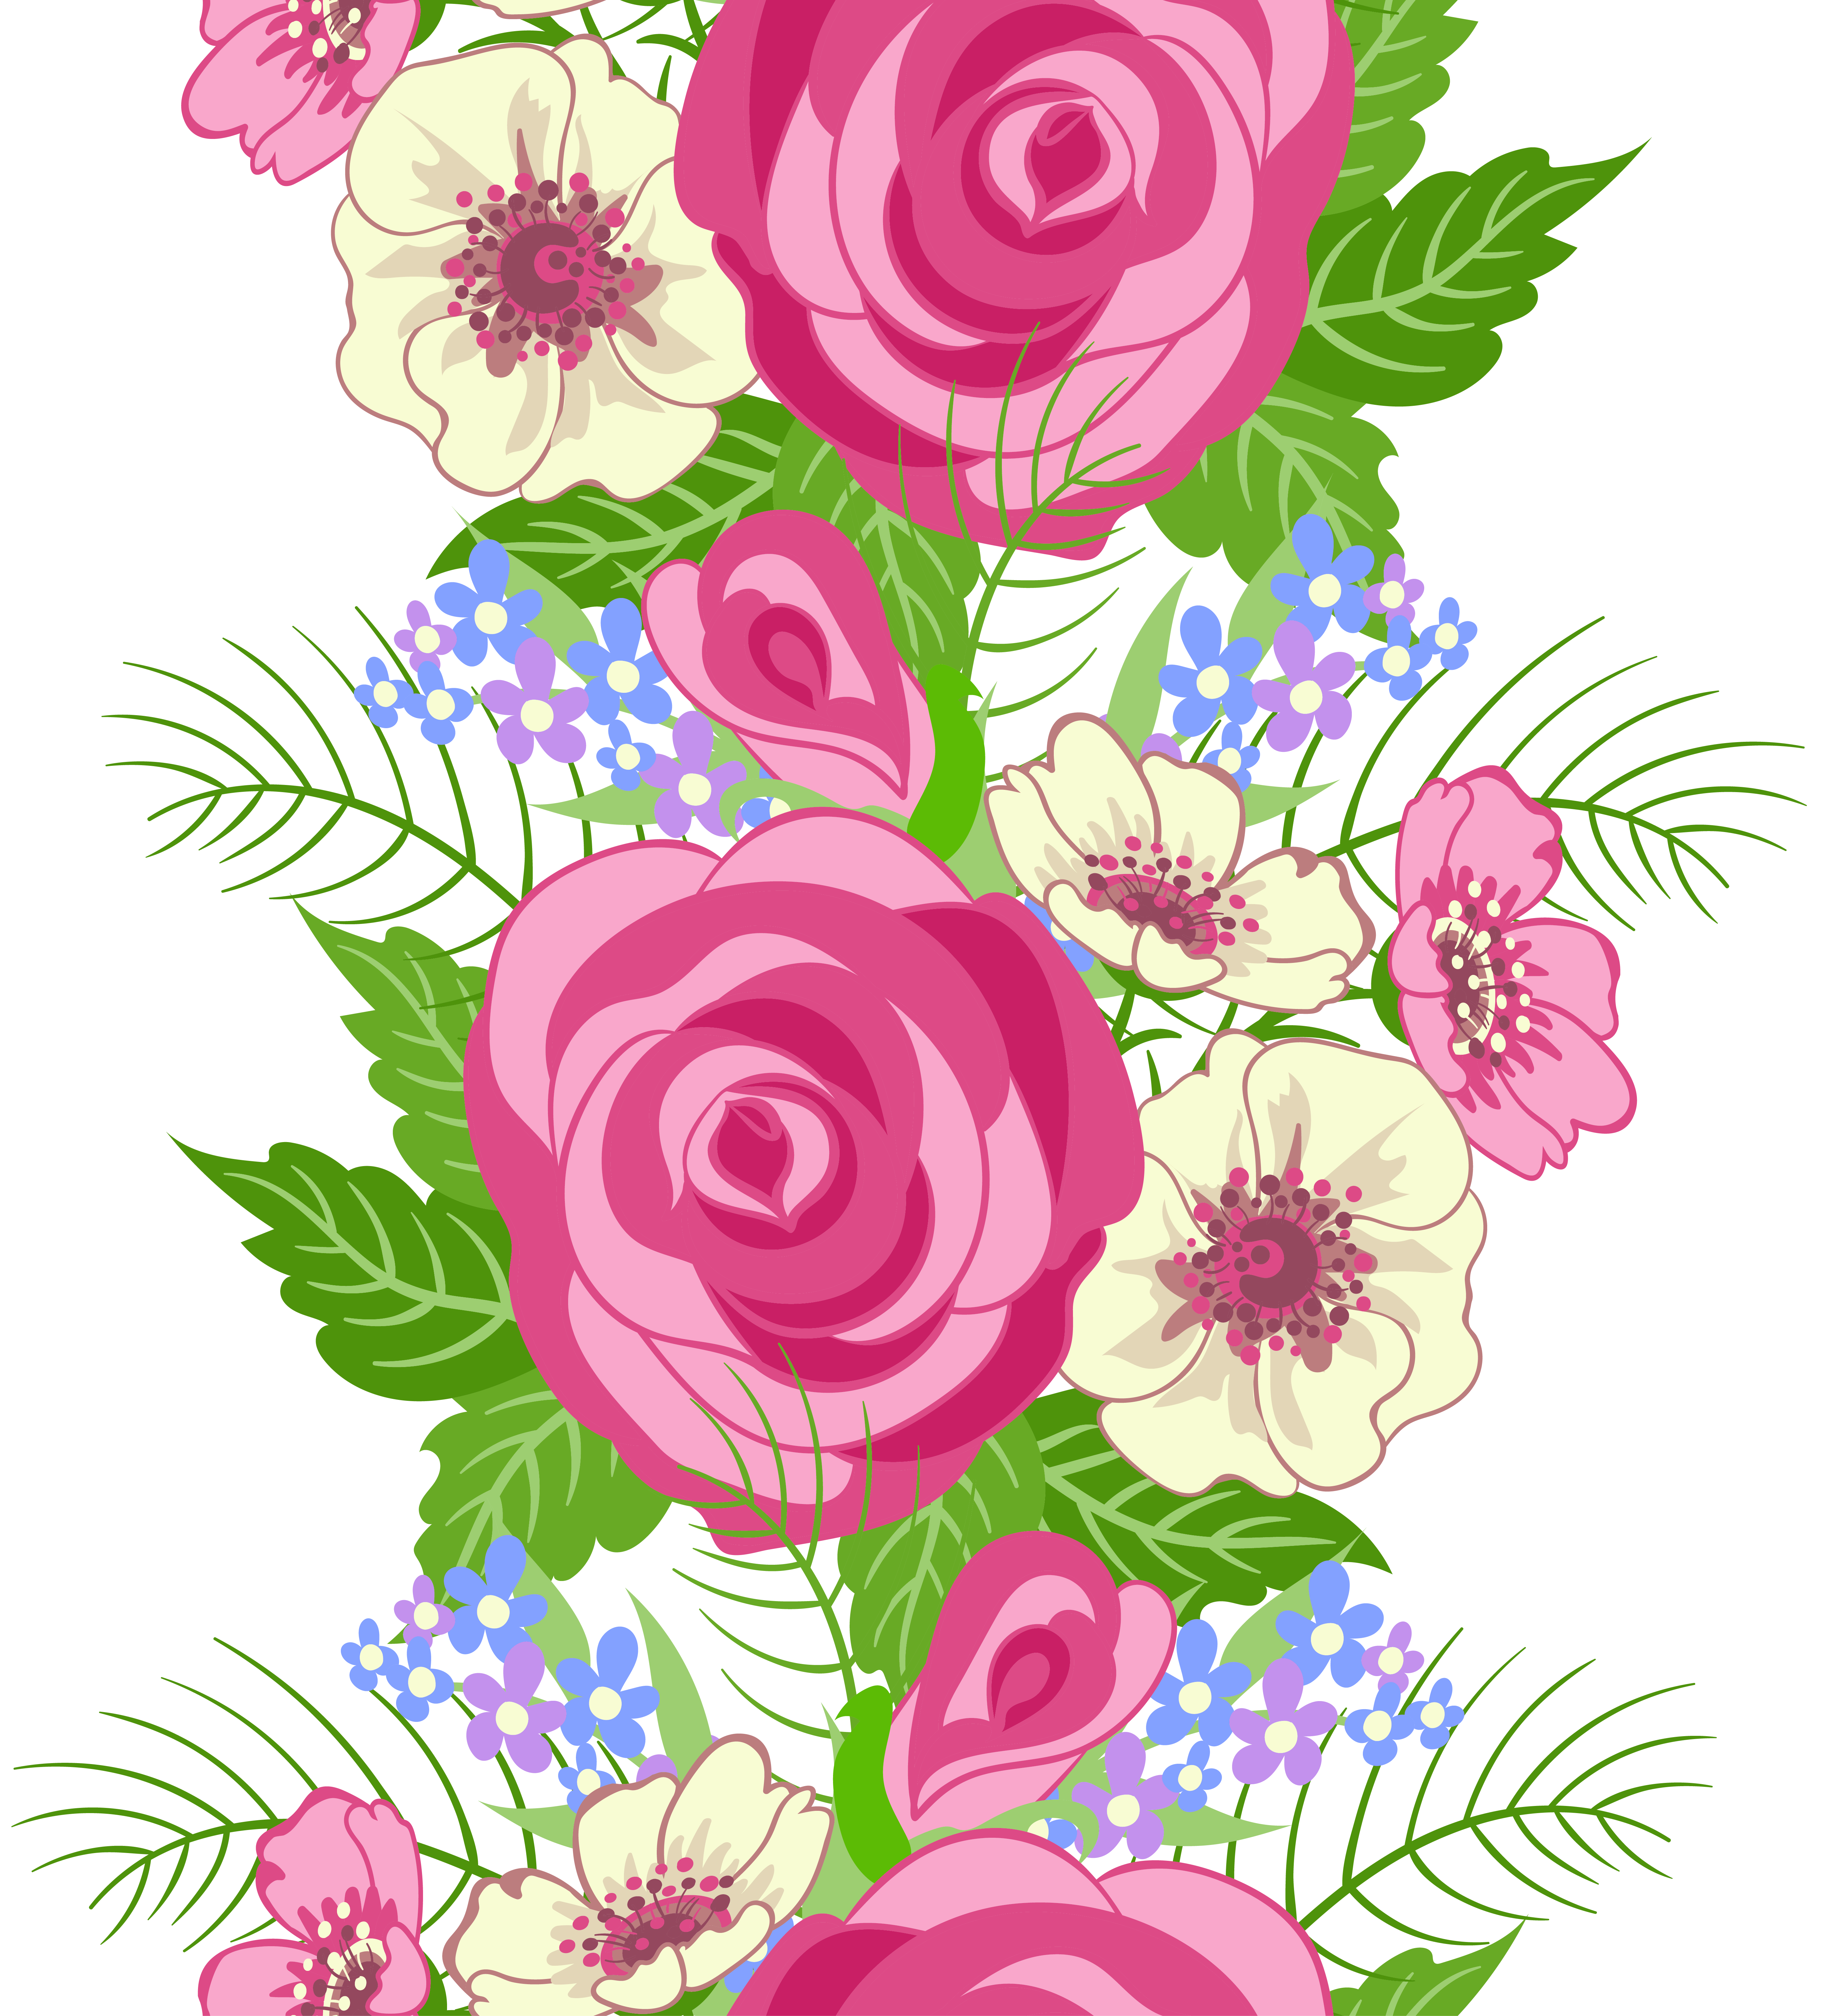 Flowers images for free download black and white stock Floral Element PNG Image   Gallery Yopriceville - High-Quality ... black and white stock